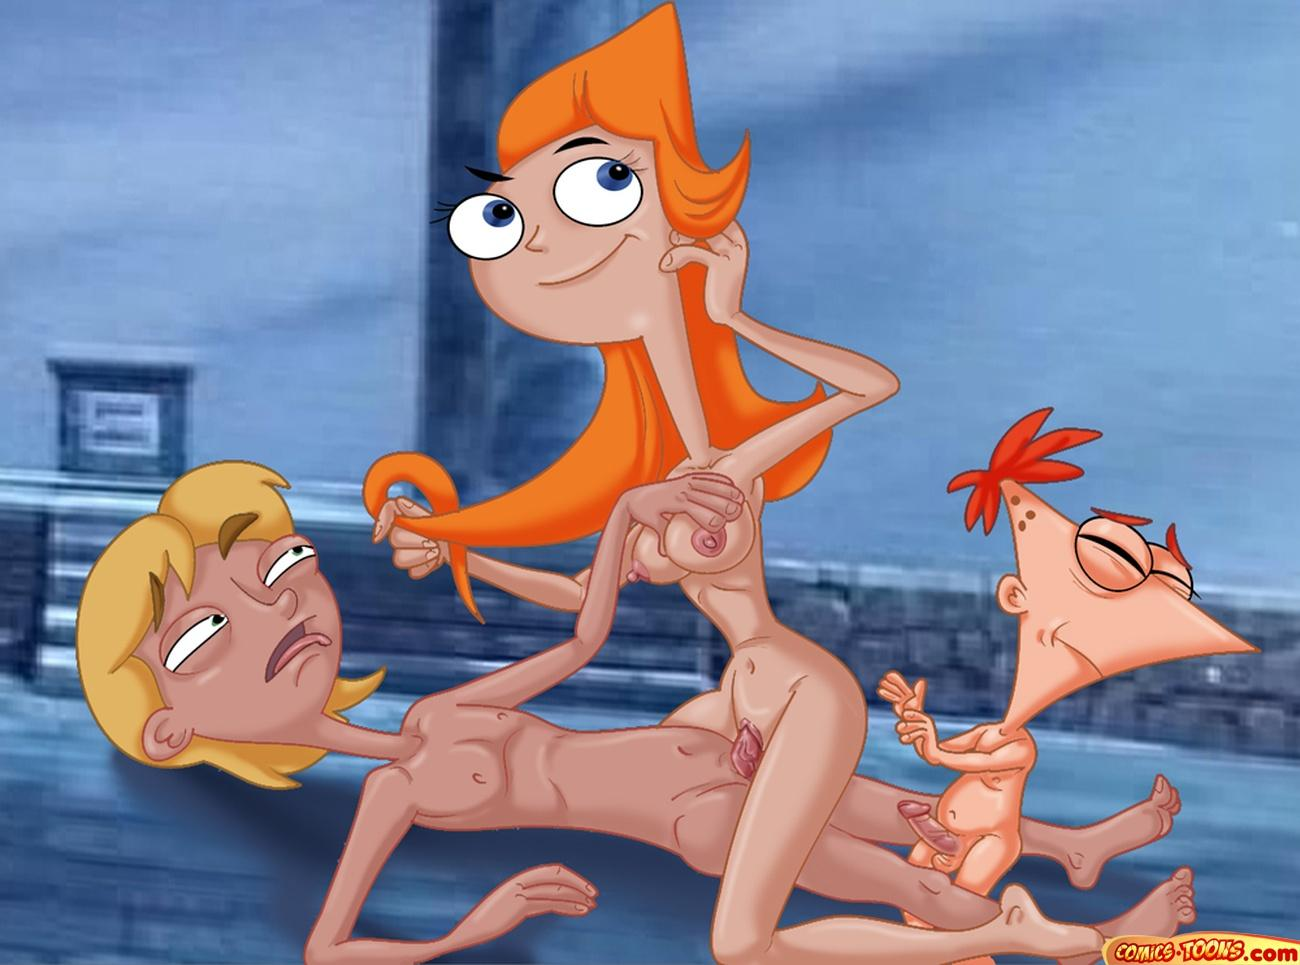 pregnant and candace ferb phineas Far cry new dawn nudity